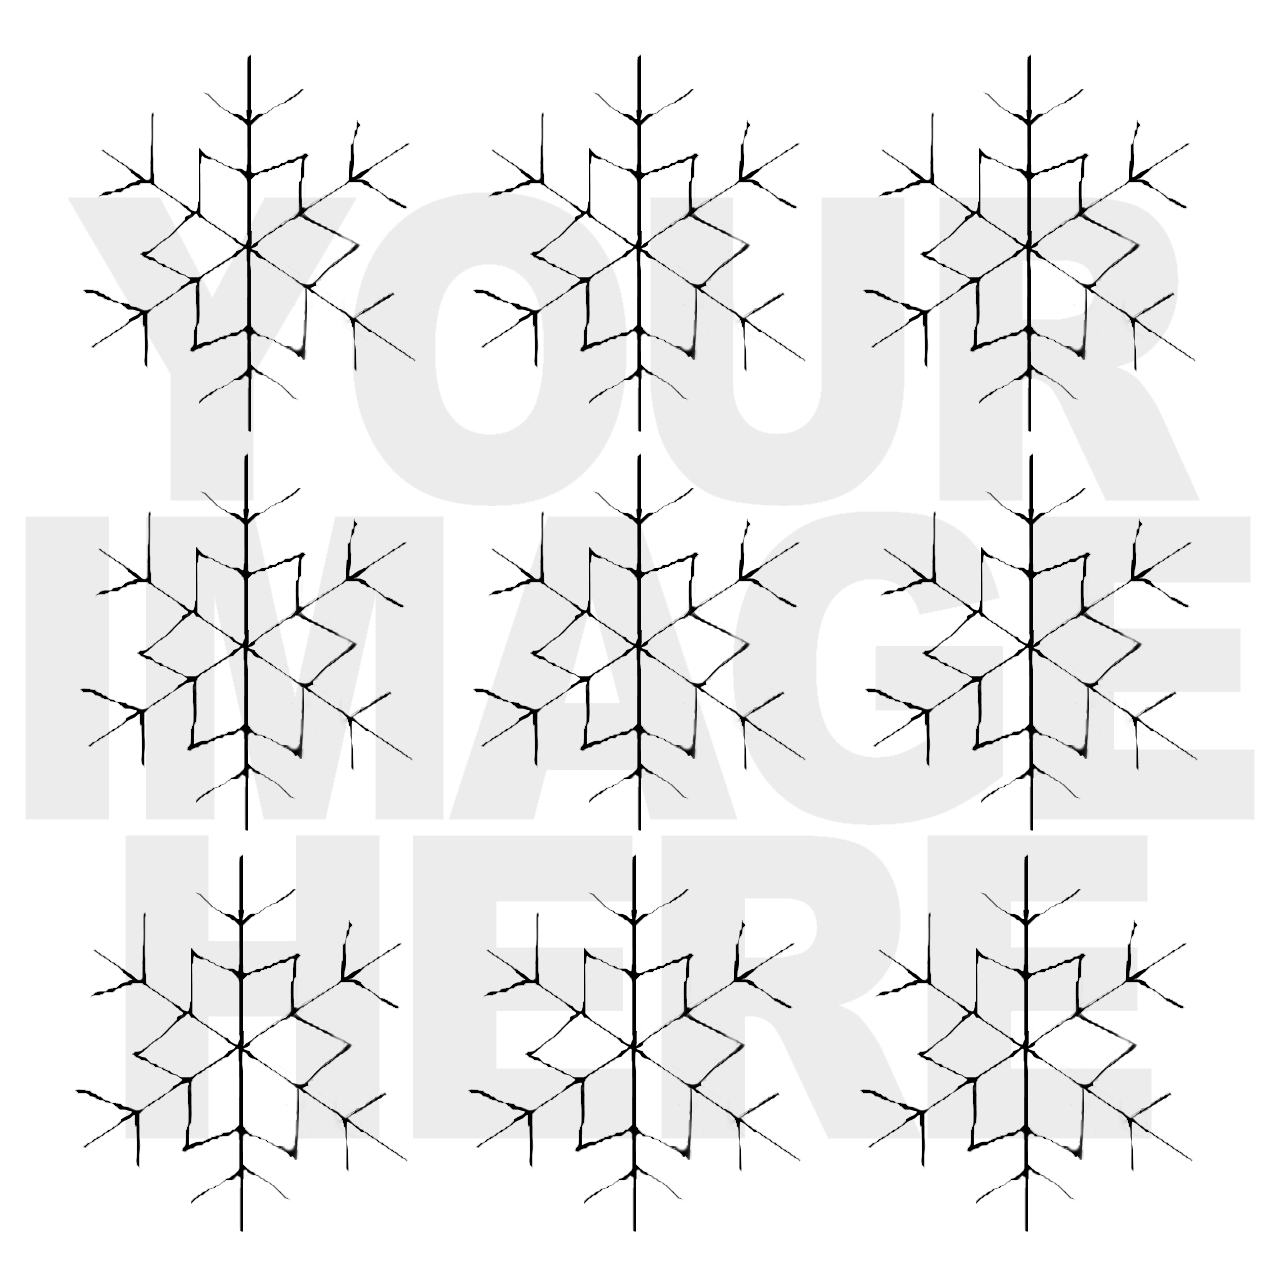 FREE DOWNLOAD SNOWFLAKE TEMPLATE FOR EMBROIDERY | THE PAPER CURATOR